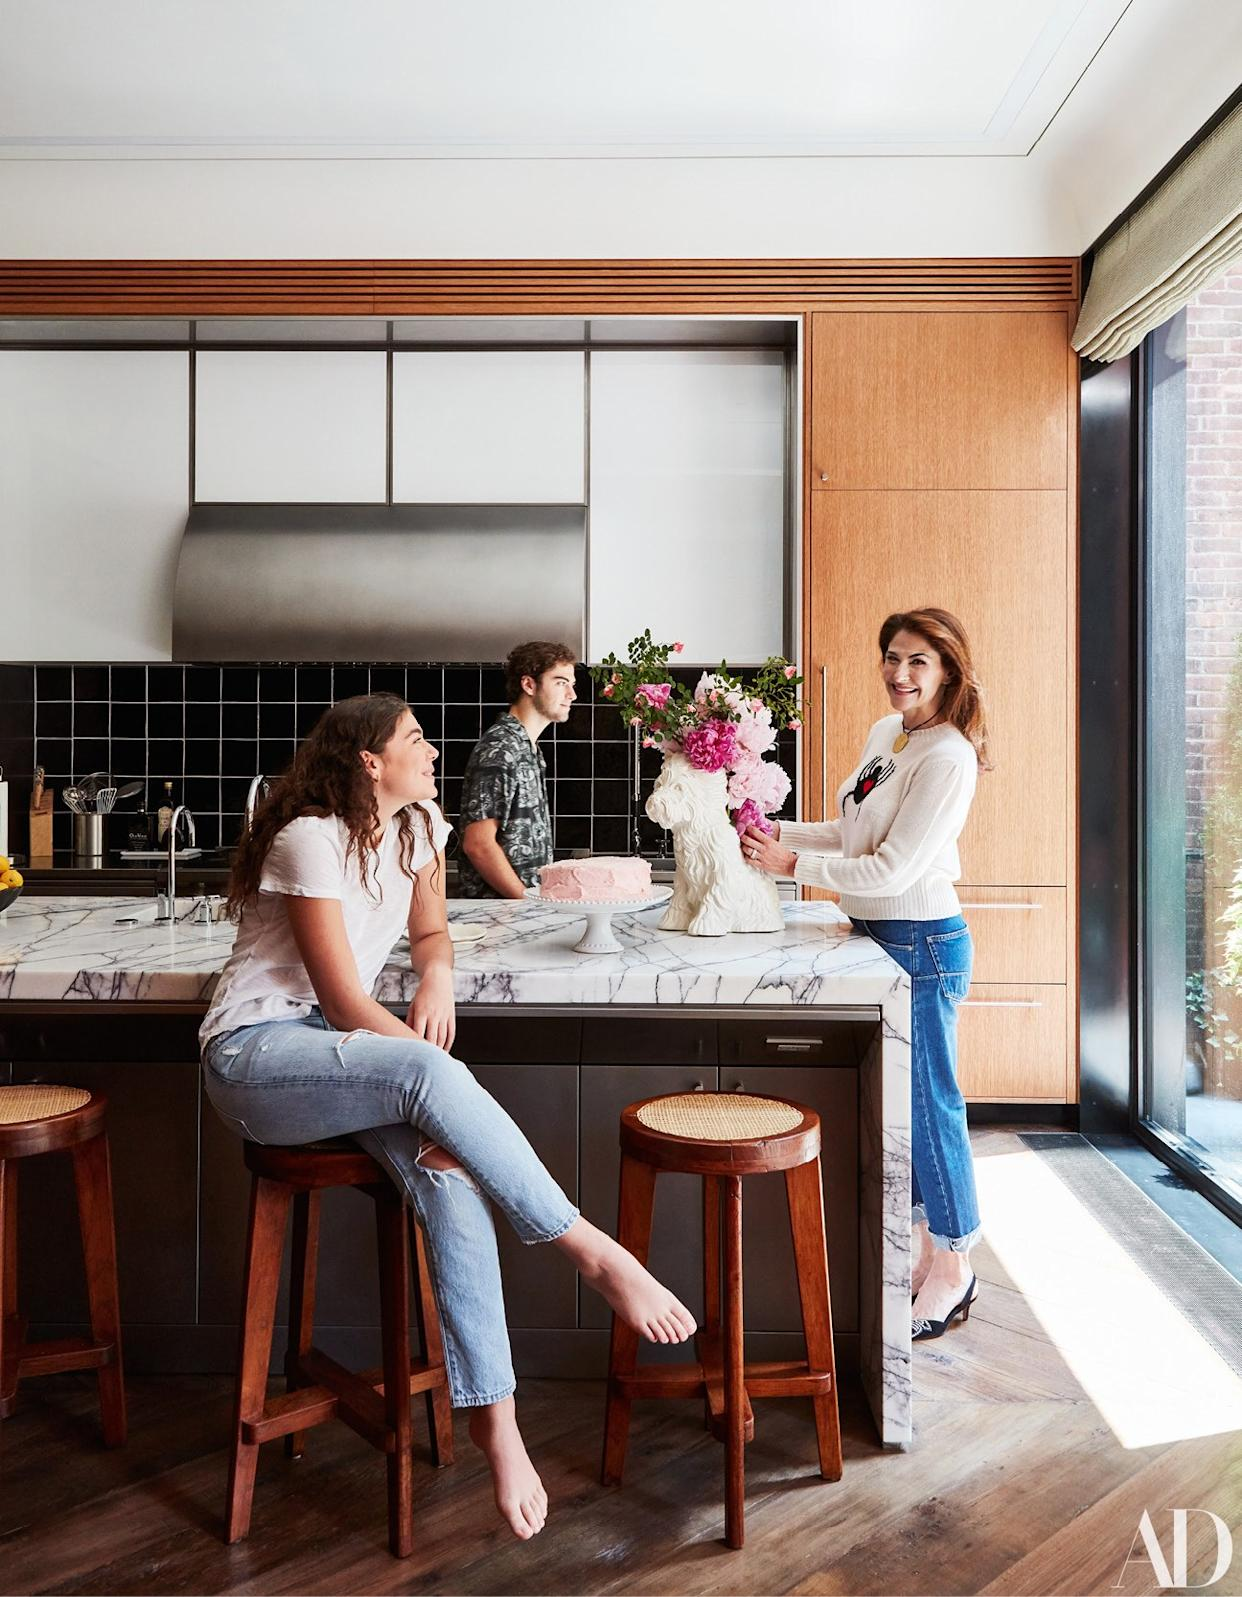 """<div class=""""caption""""> Allison, wearing a Dior sweater and jeans, and two of her children gather around the kitchen island; fashion styling by Marina Muñoz. </div>"""